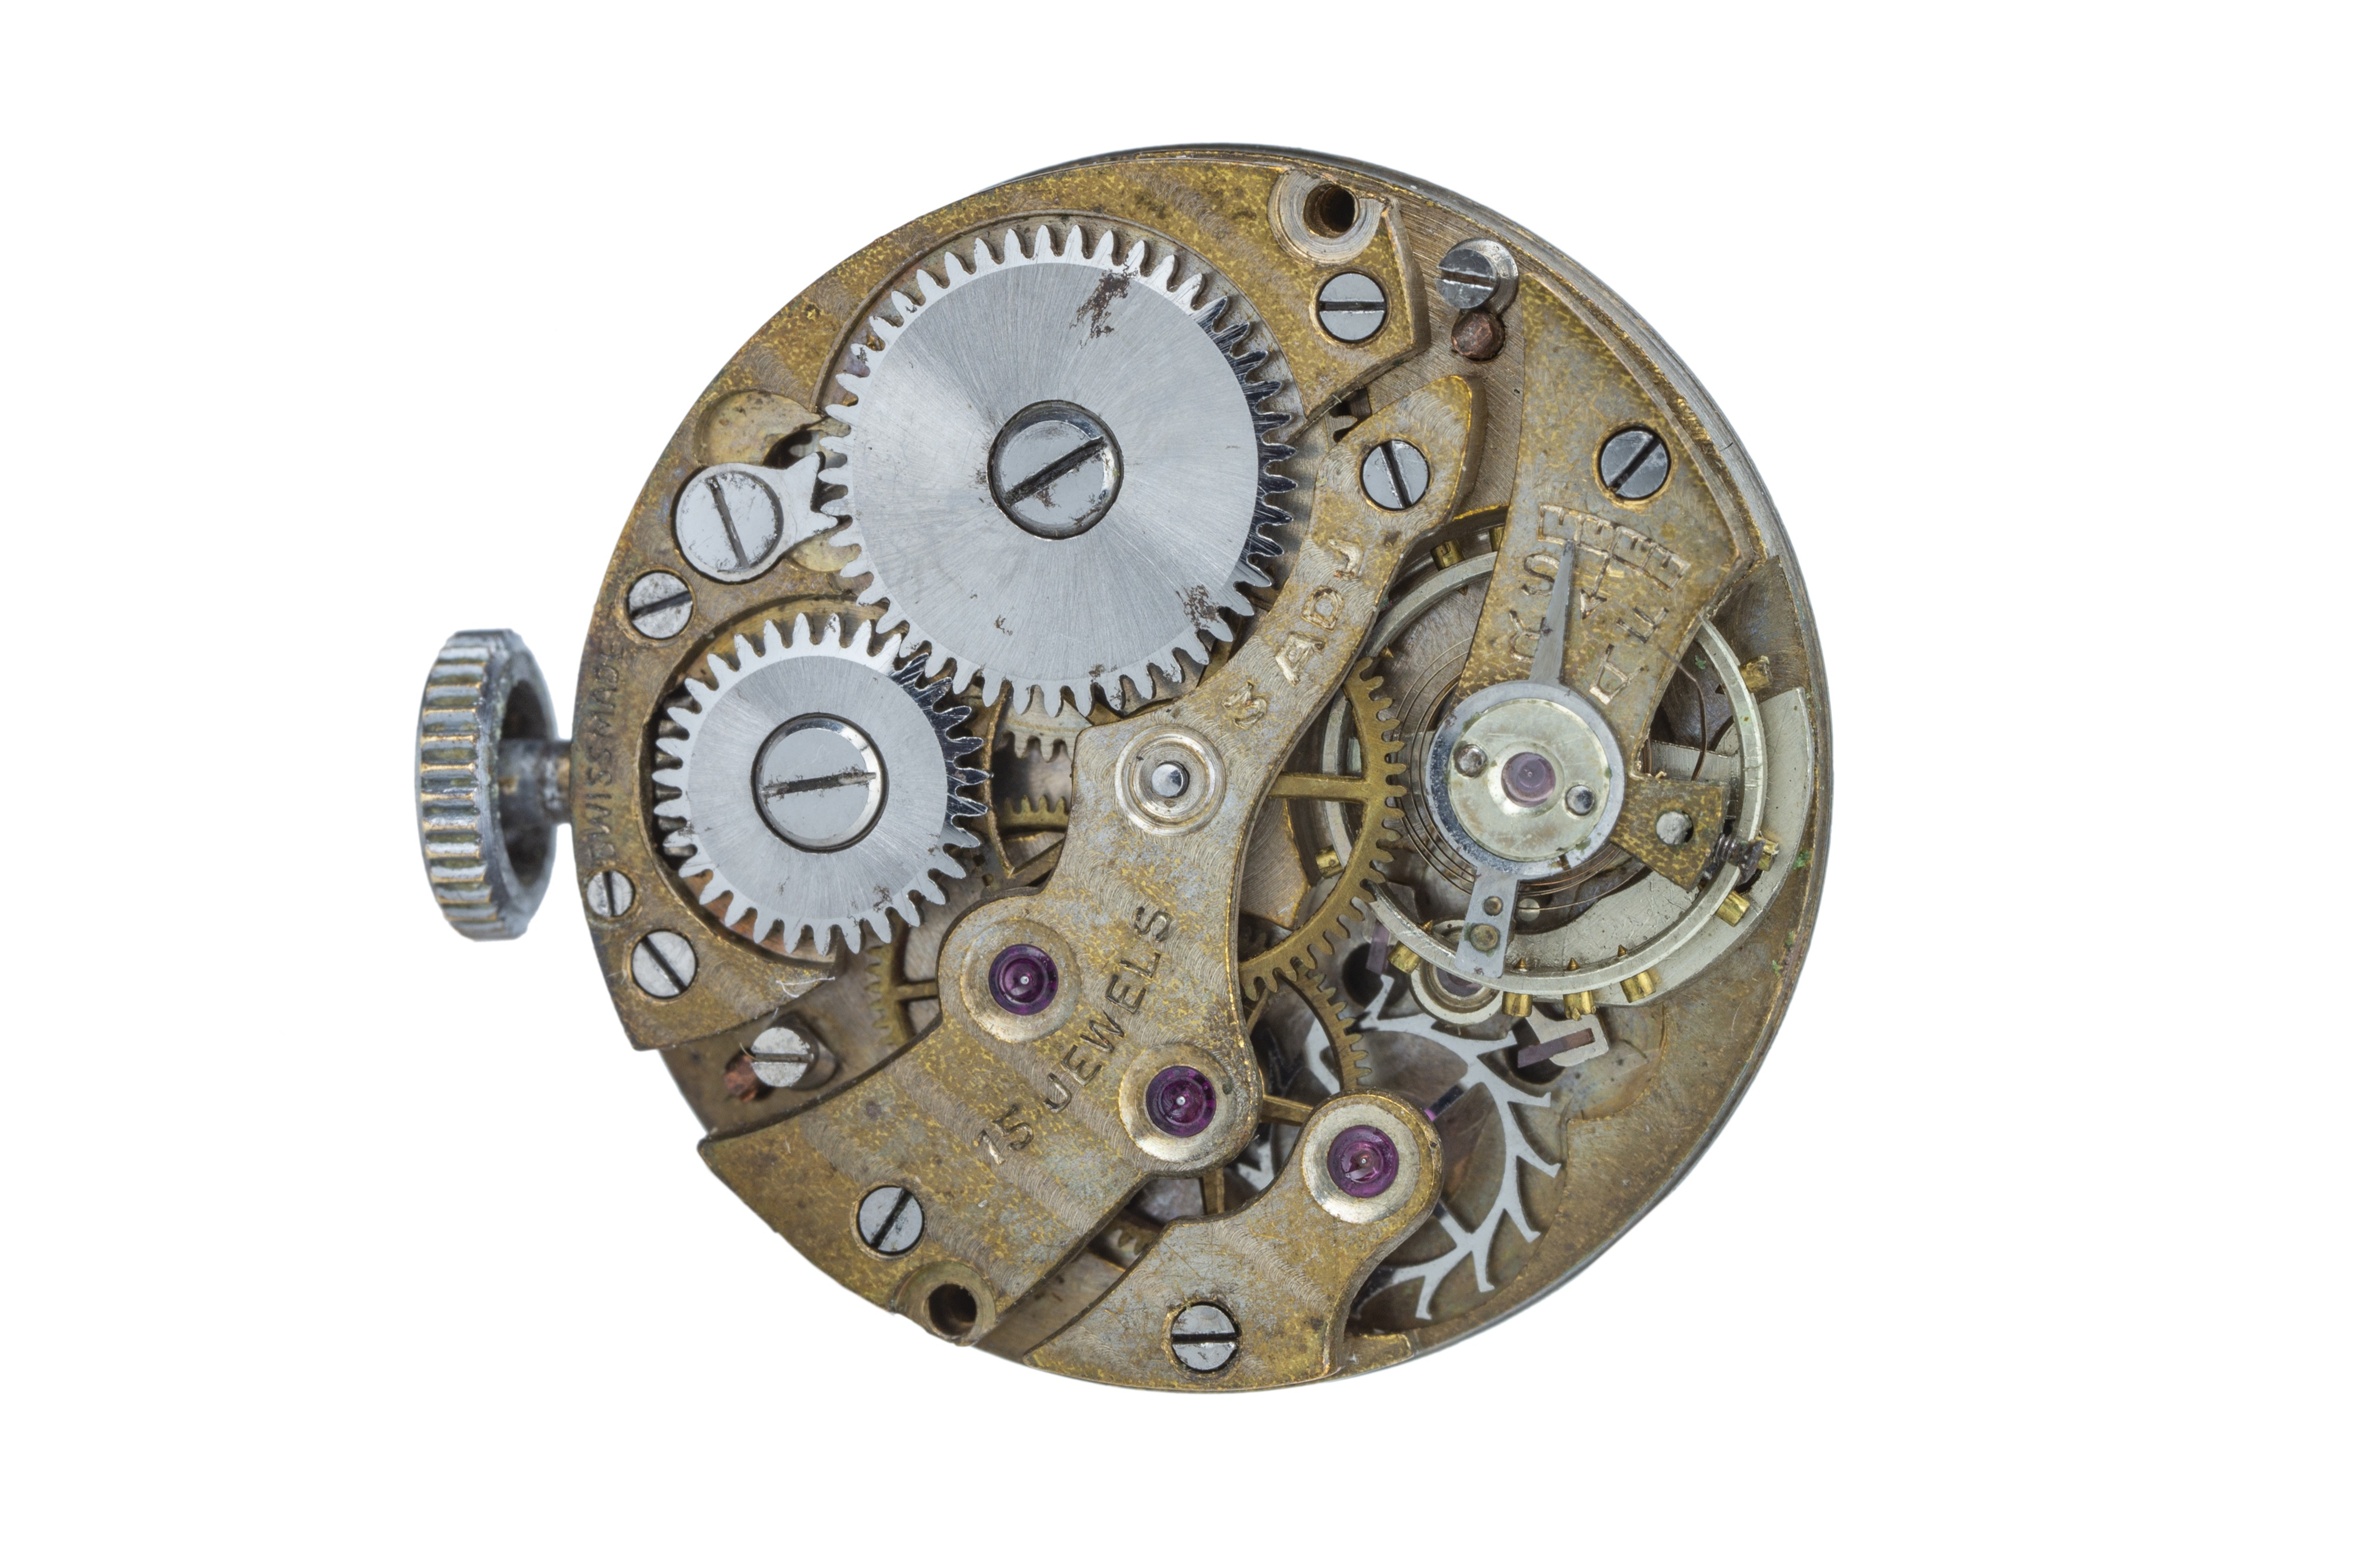 An Edwardian 18 carat gold and diamond cocktail watch. - Image 3 of 3